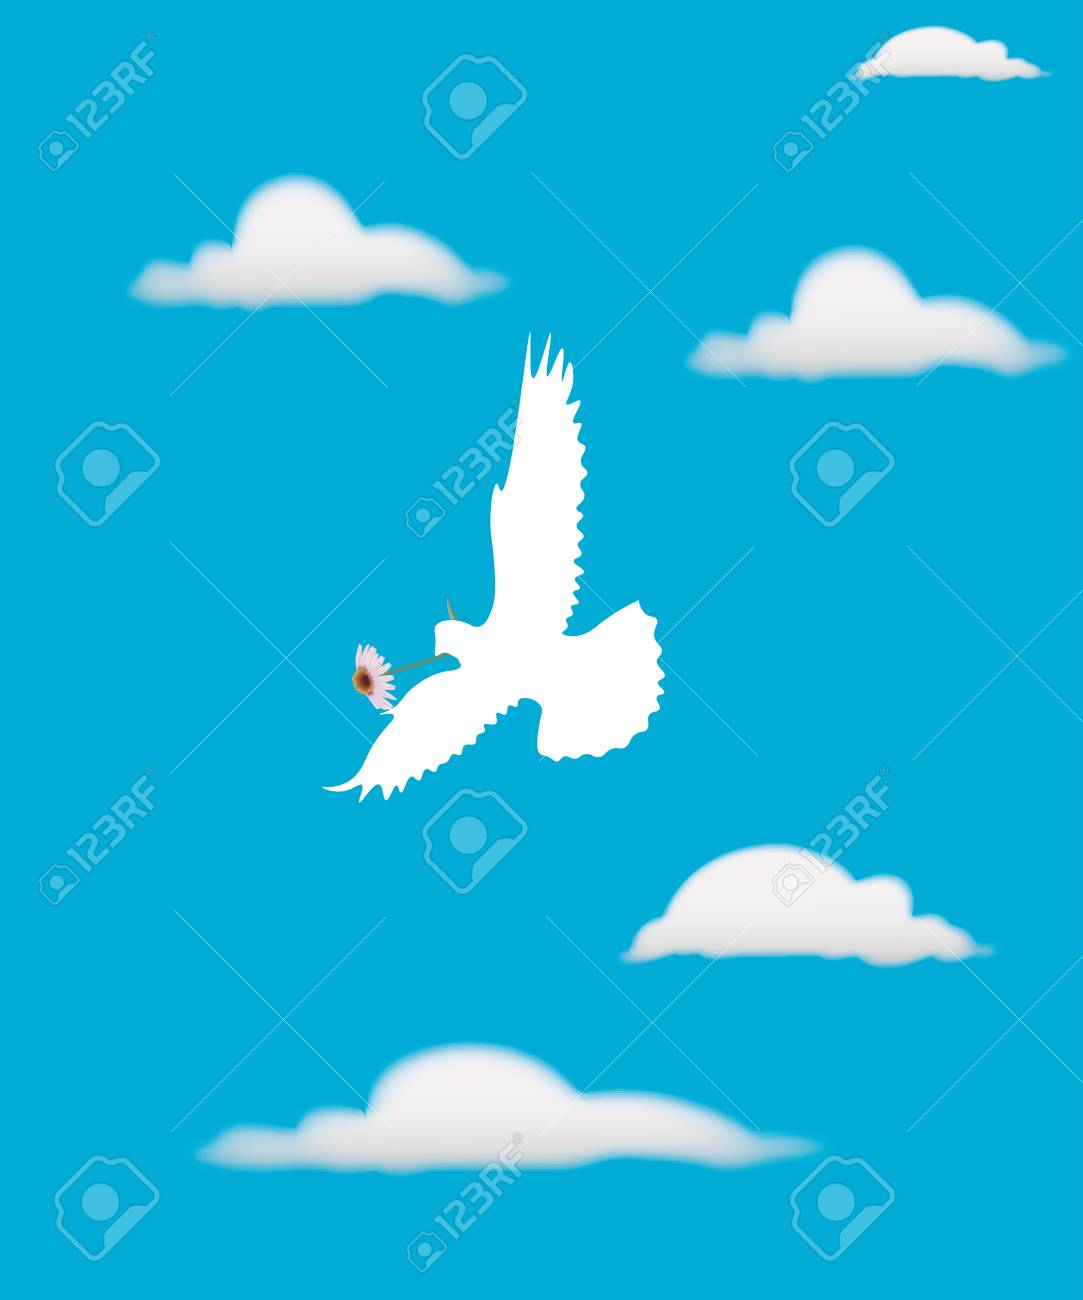 White Dove Against The Blue Sky And White Clouds The Symbol Of